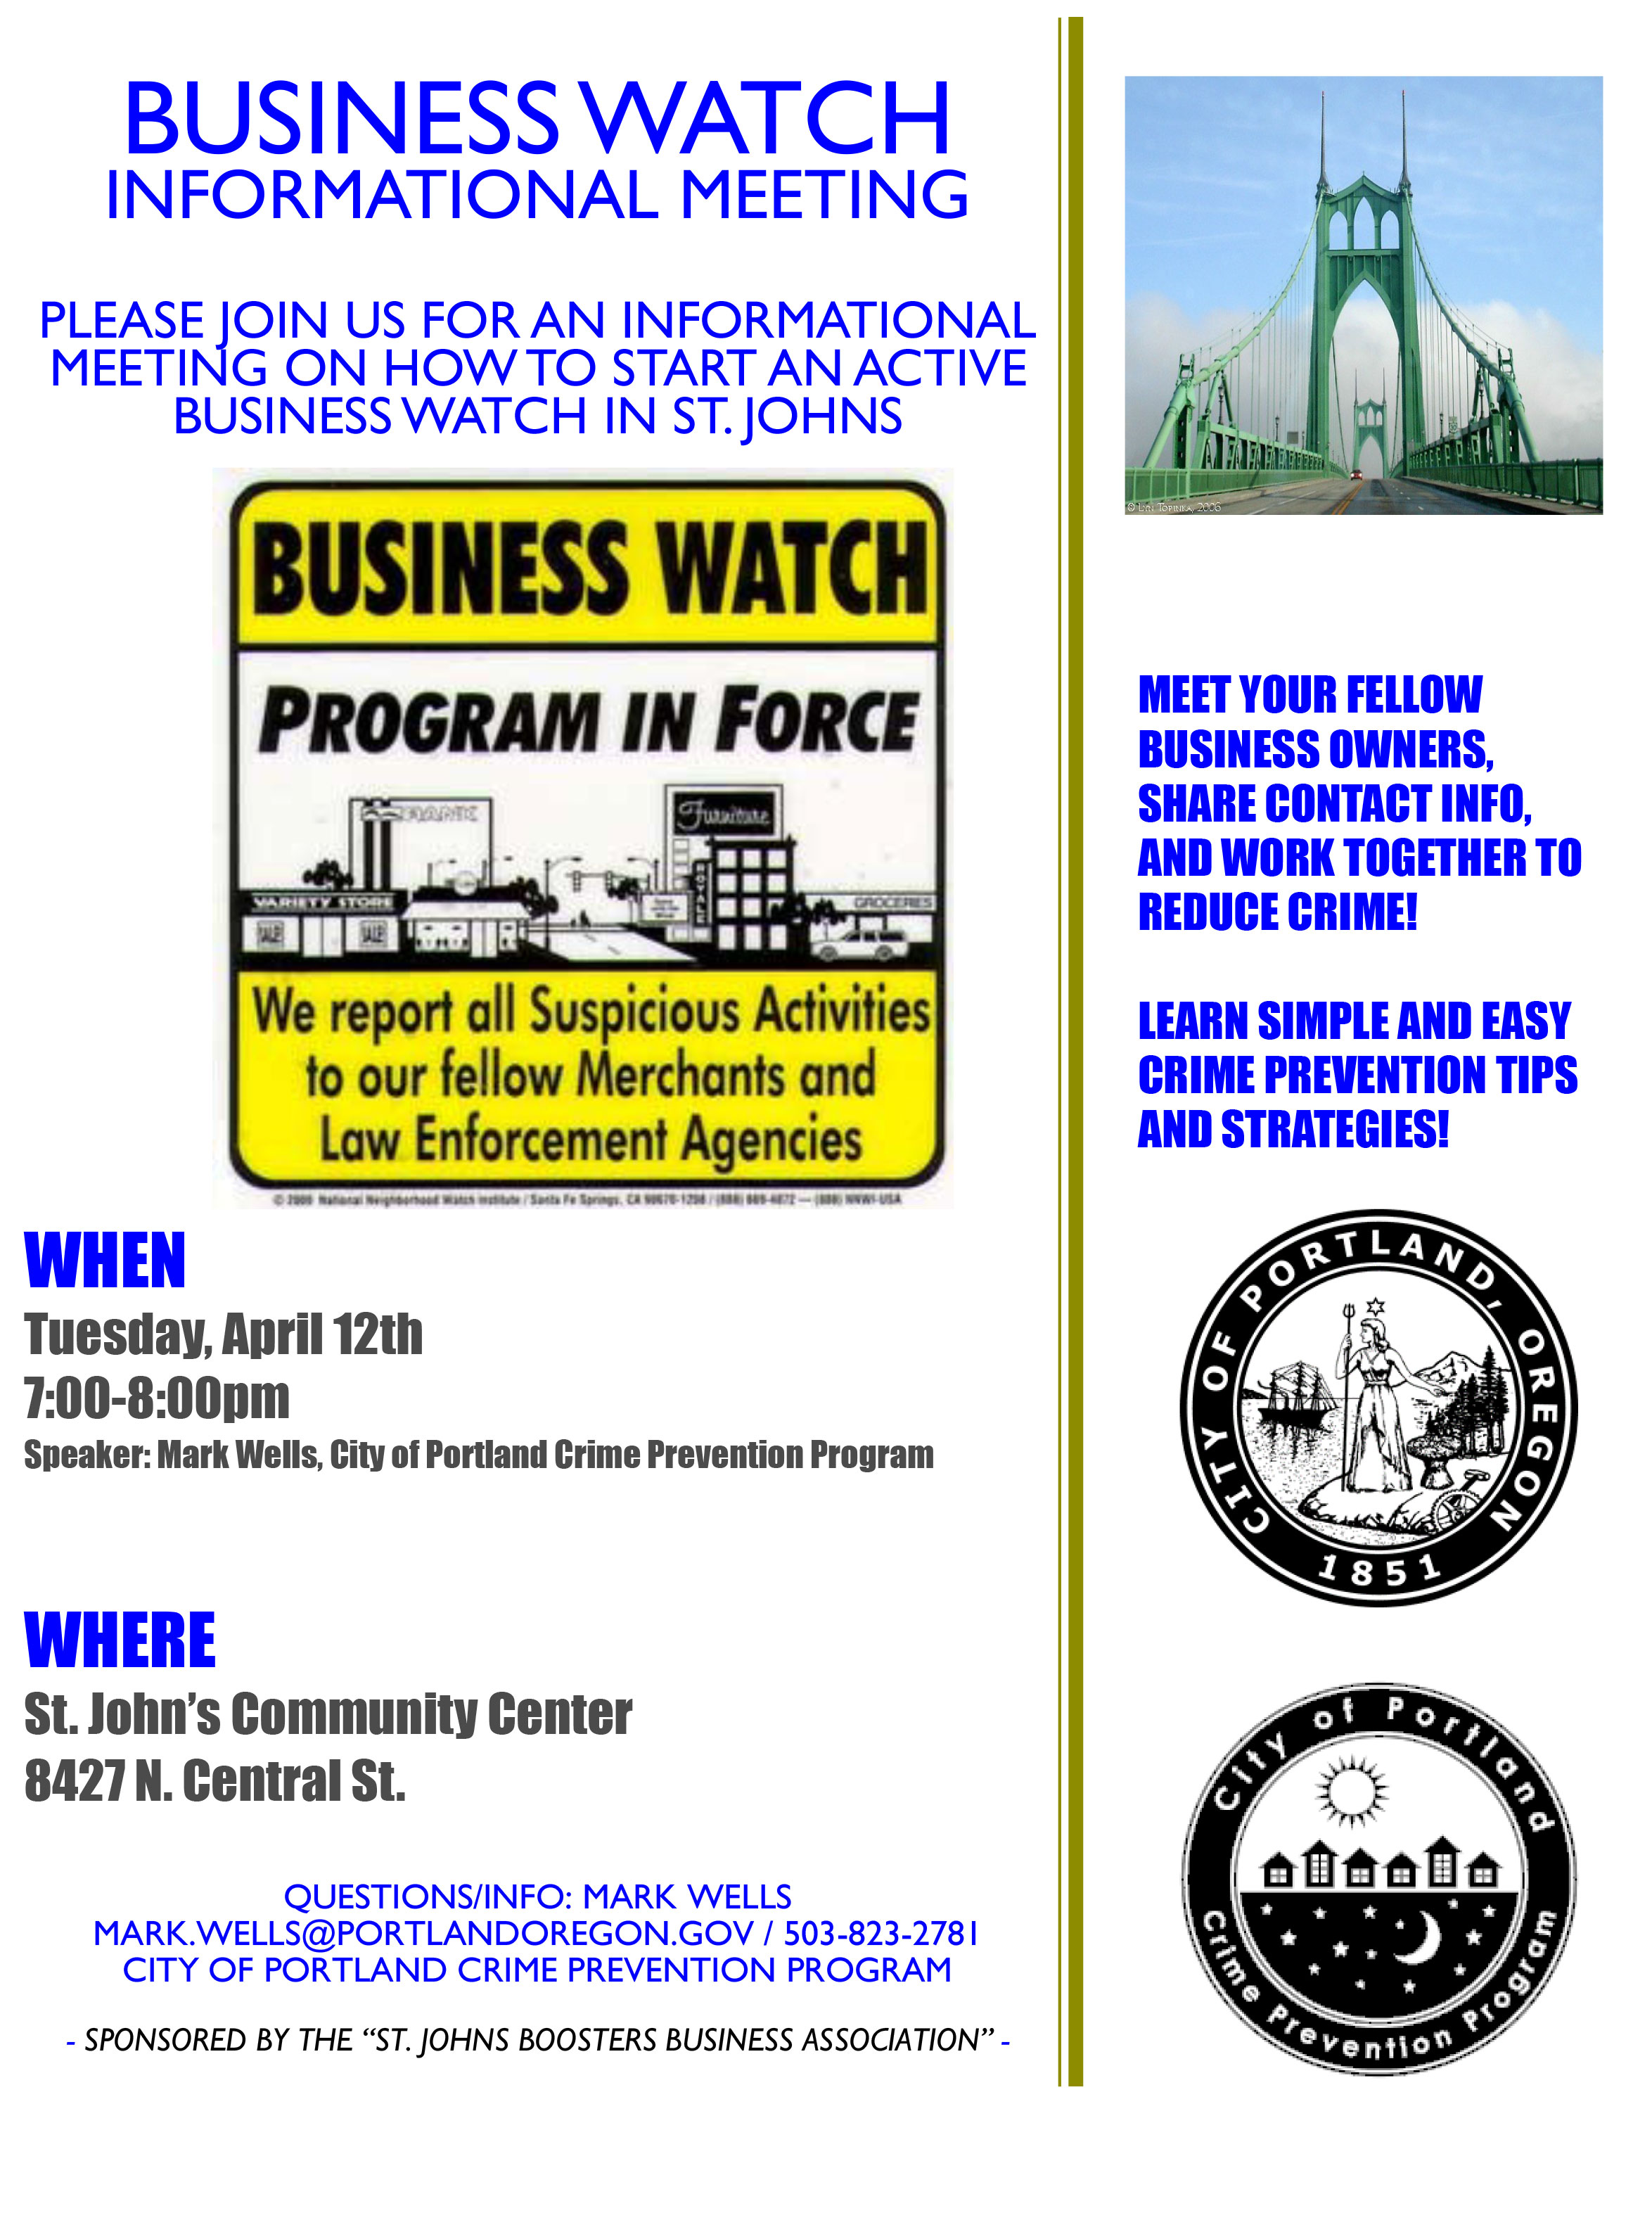 Business Watch informational meeting